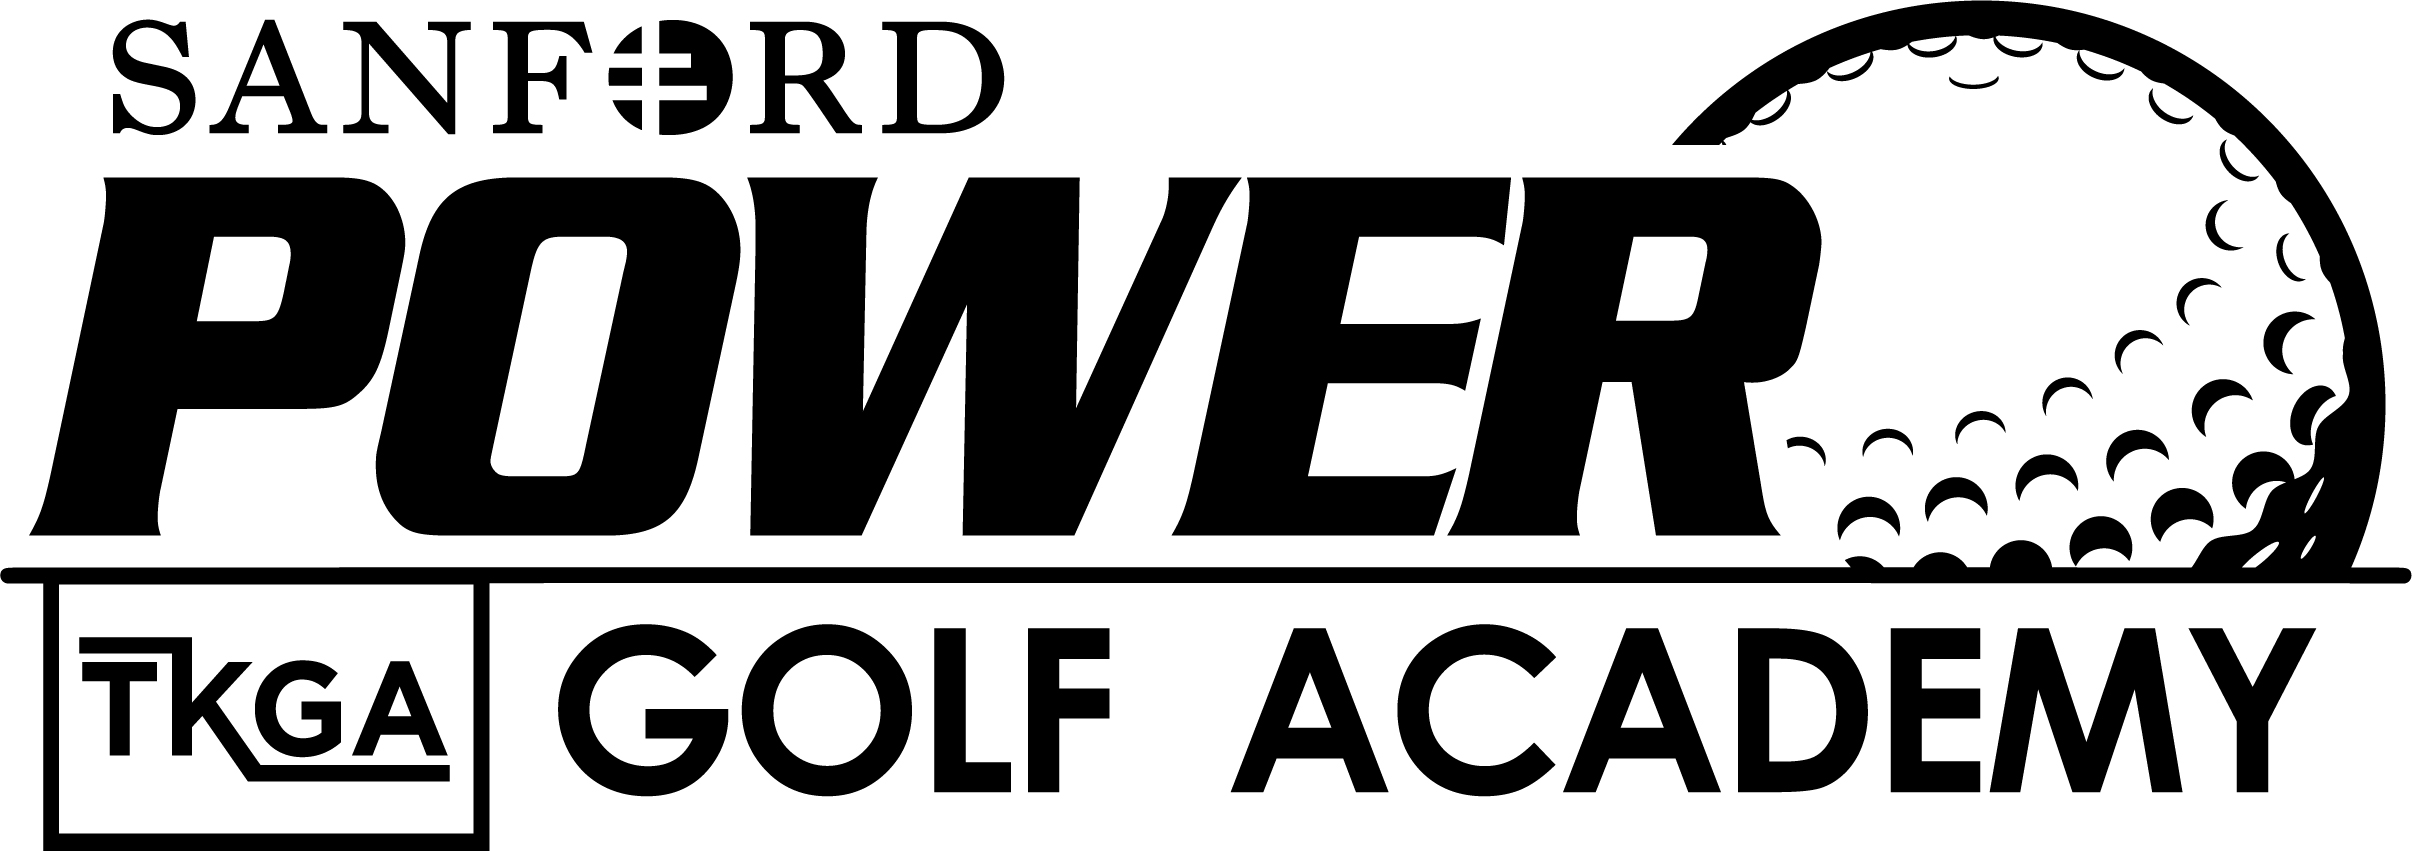 Sanford POWER Golf Academy: An Introduction